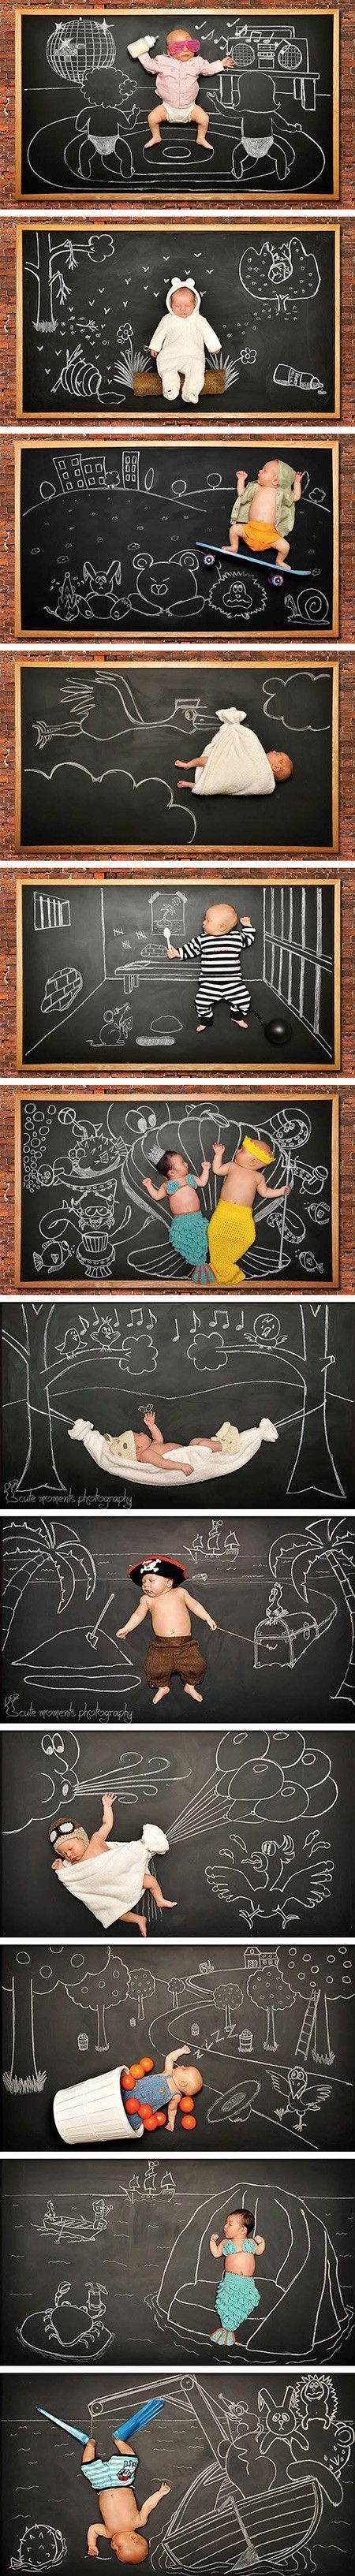 Photographer Wants Newborn Son to Think She's Cool, Blackboard Adventures Ensue - TechEBlog: